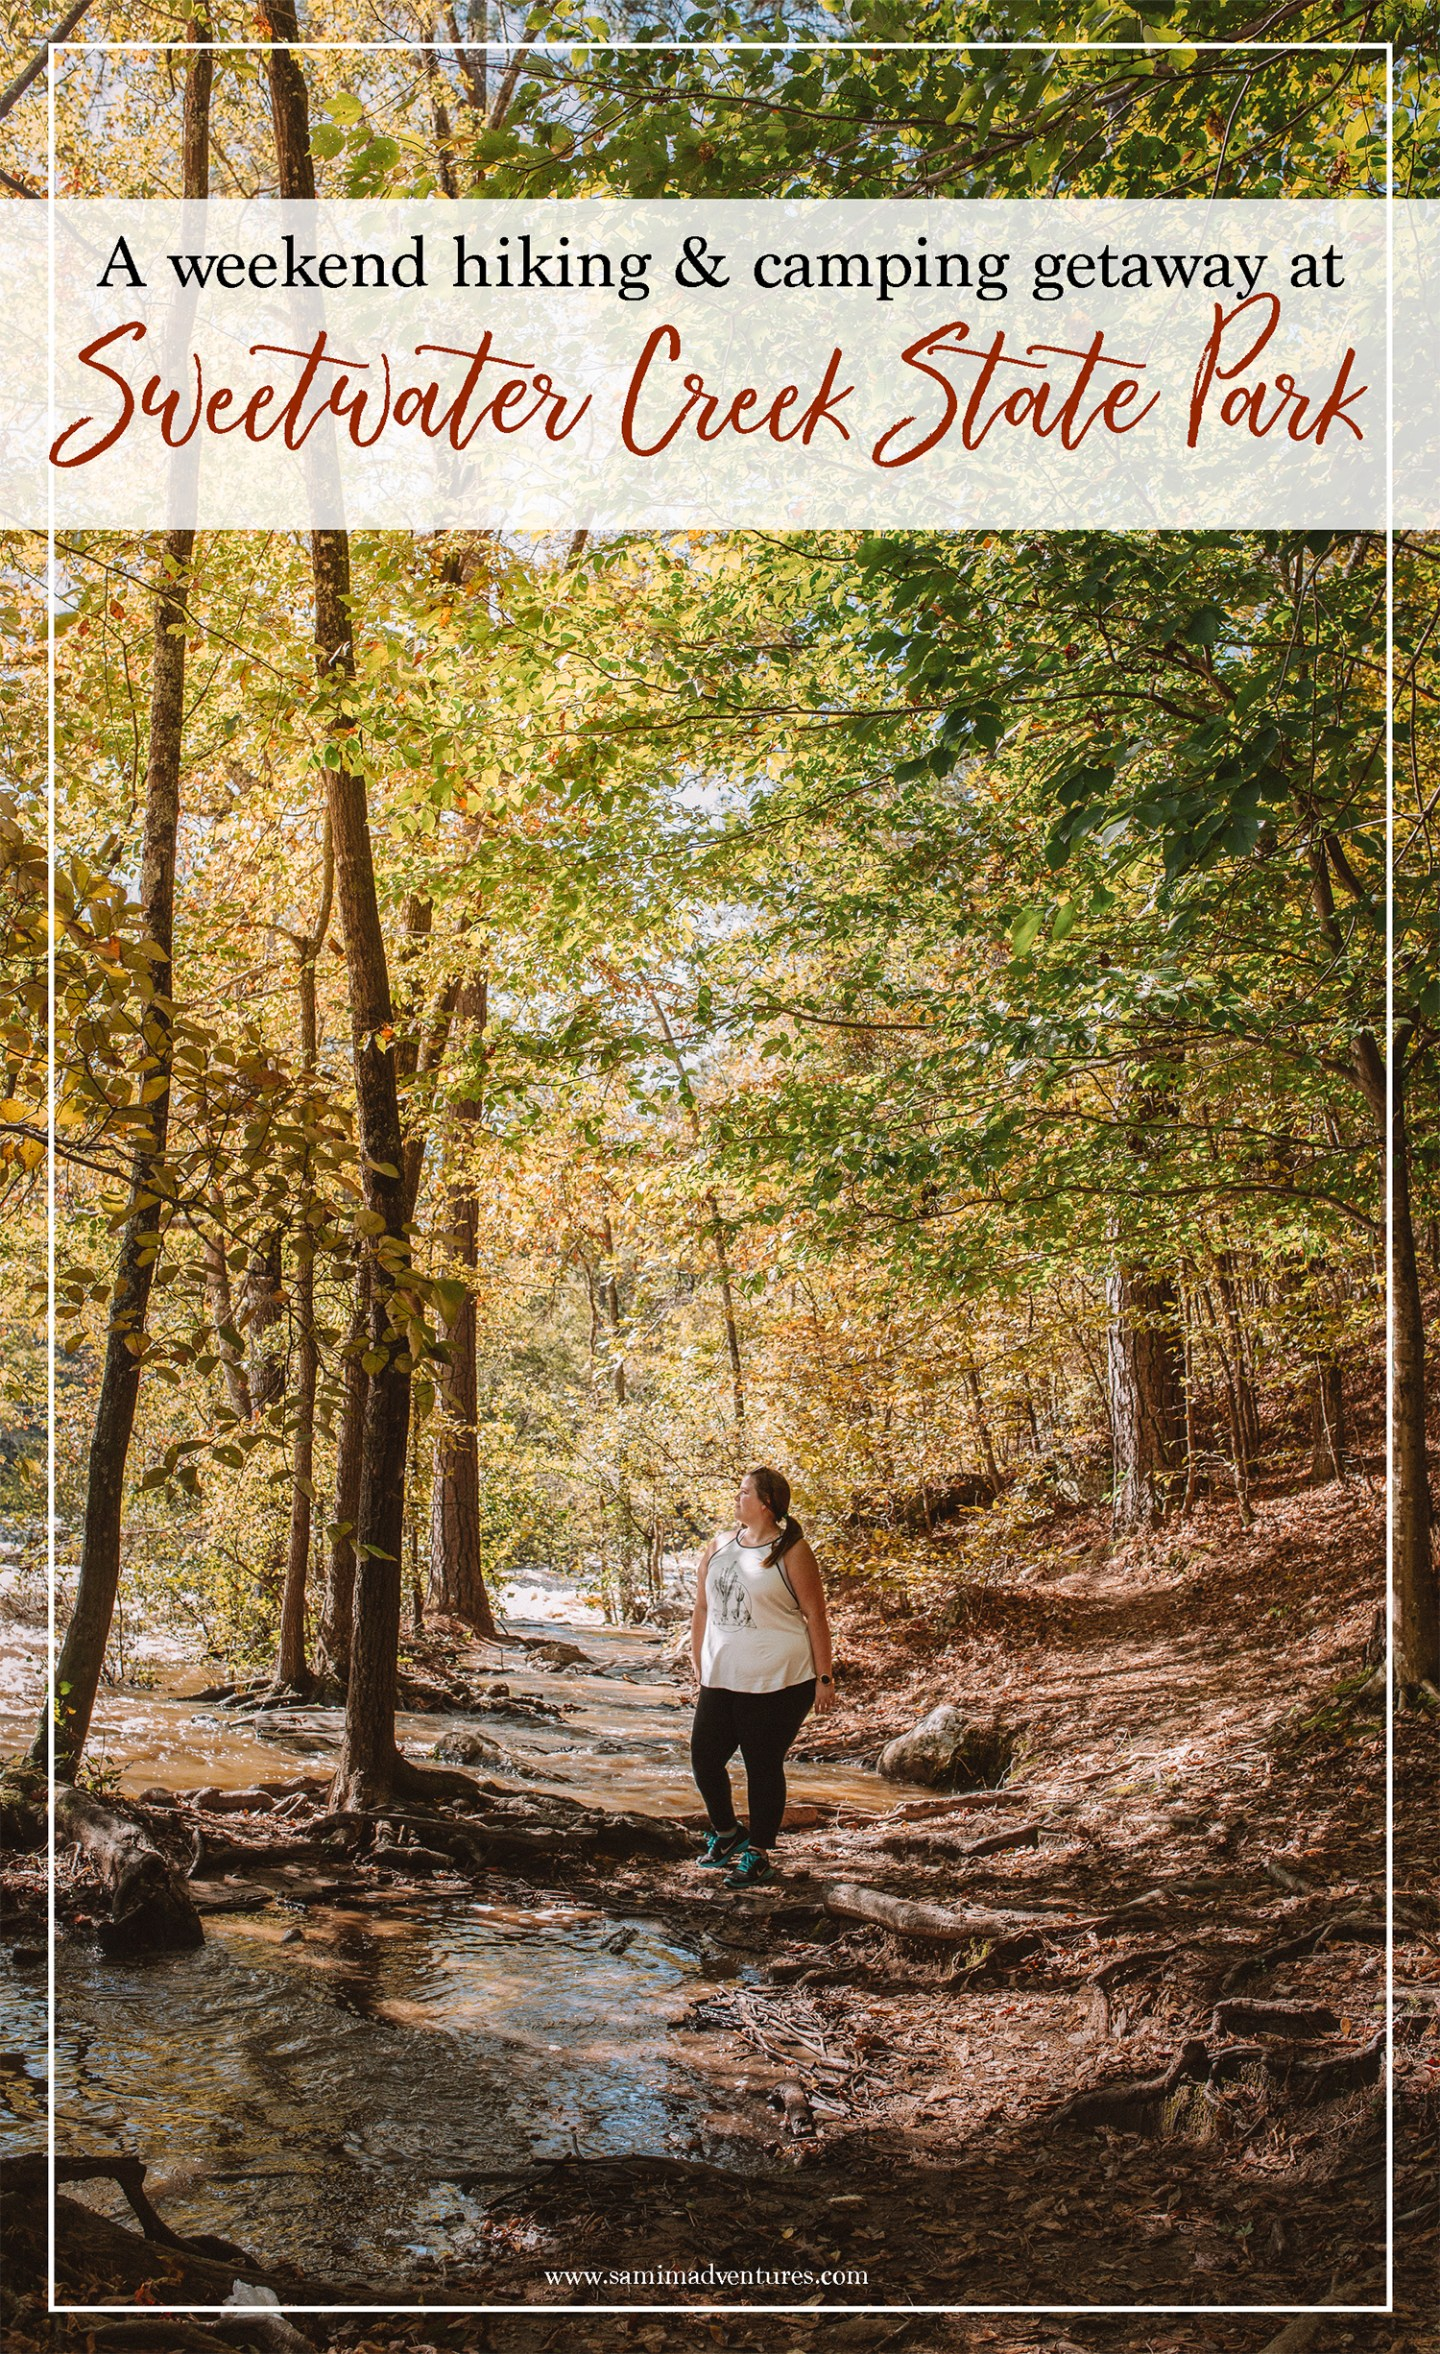 If you are a hiking enthusiast or you get spurts of energy to do spontaneous physical activity, consider a weekend getaway at Sweetwater Creek State Park